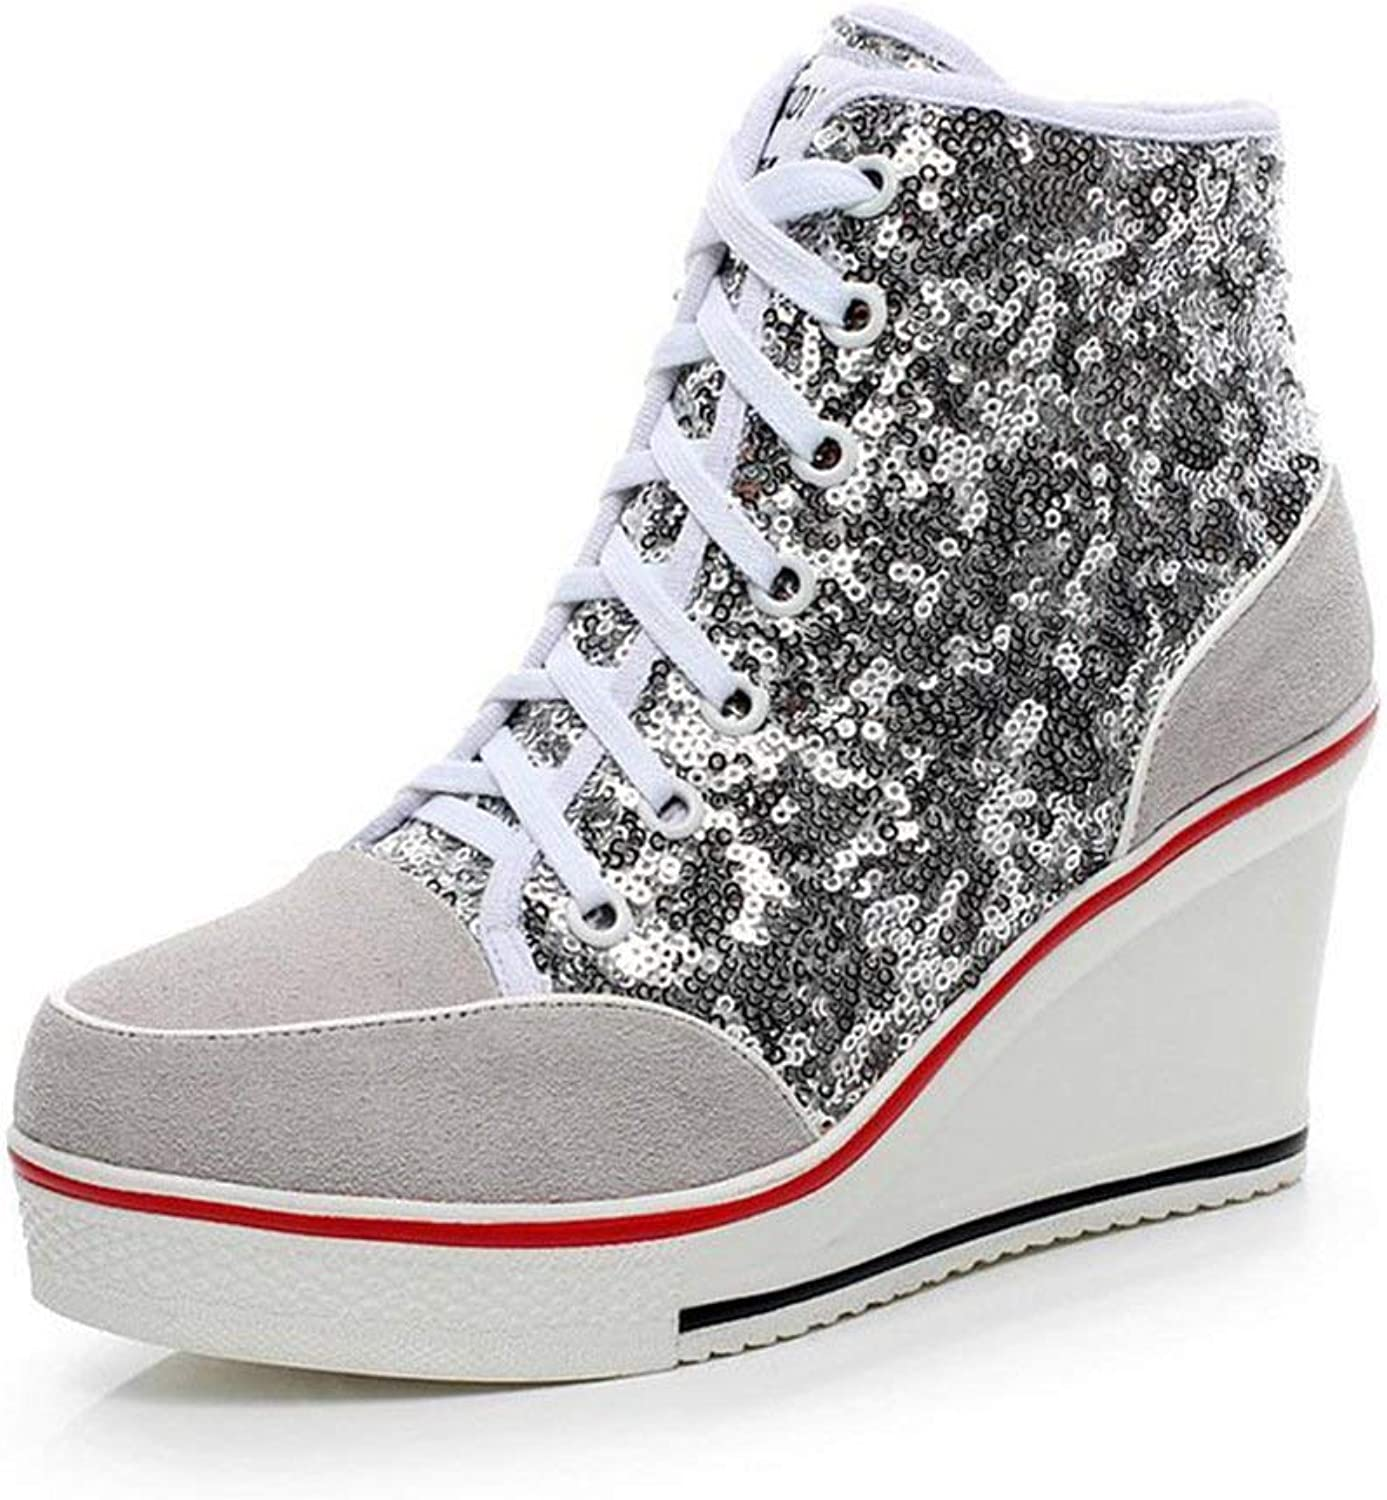 Boolee Women's Genuine Leather Wedge Platform Sneaker Paillette shoes